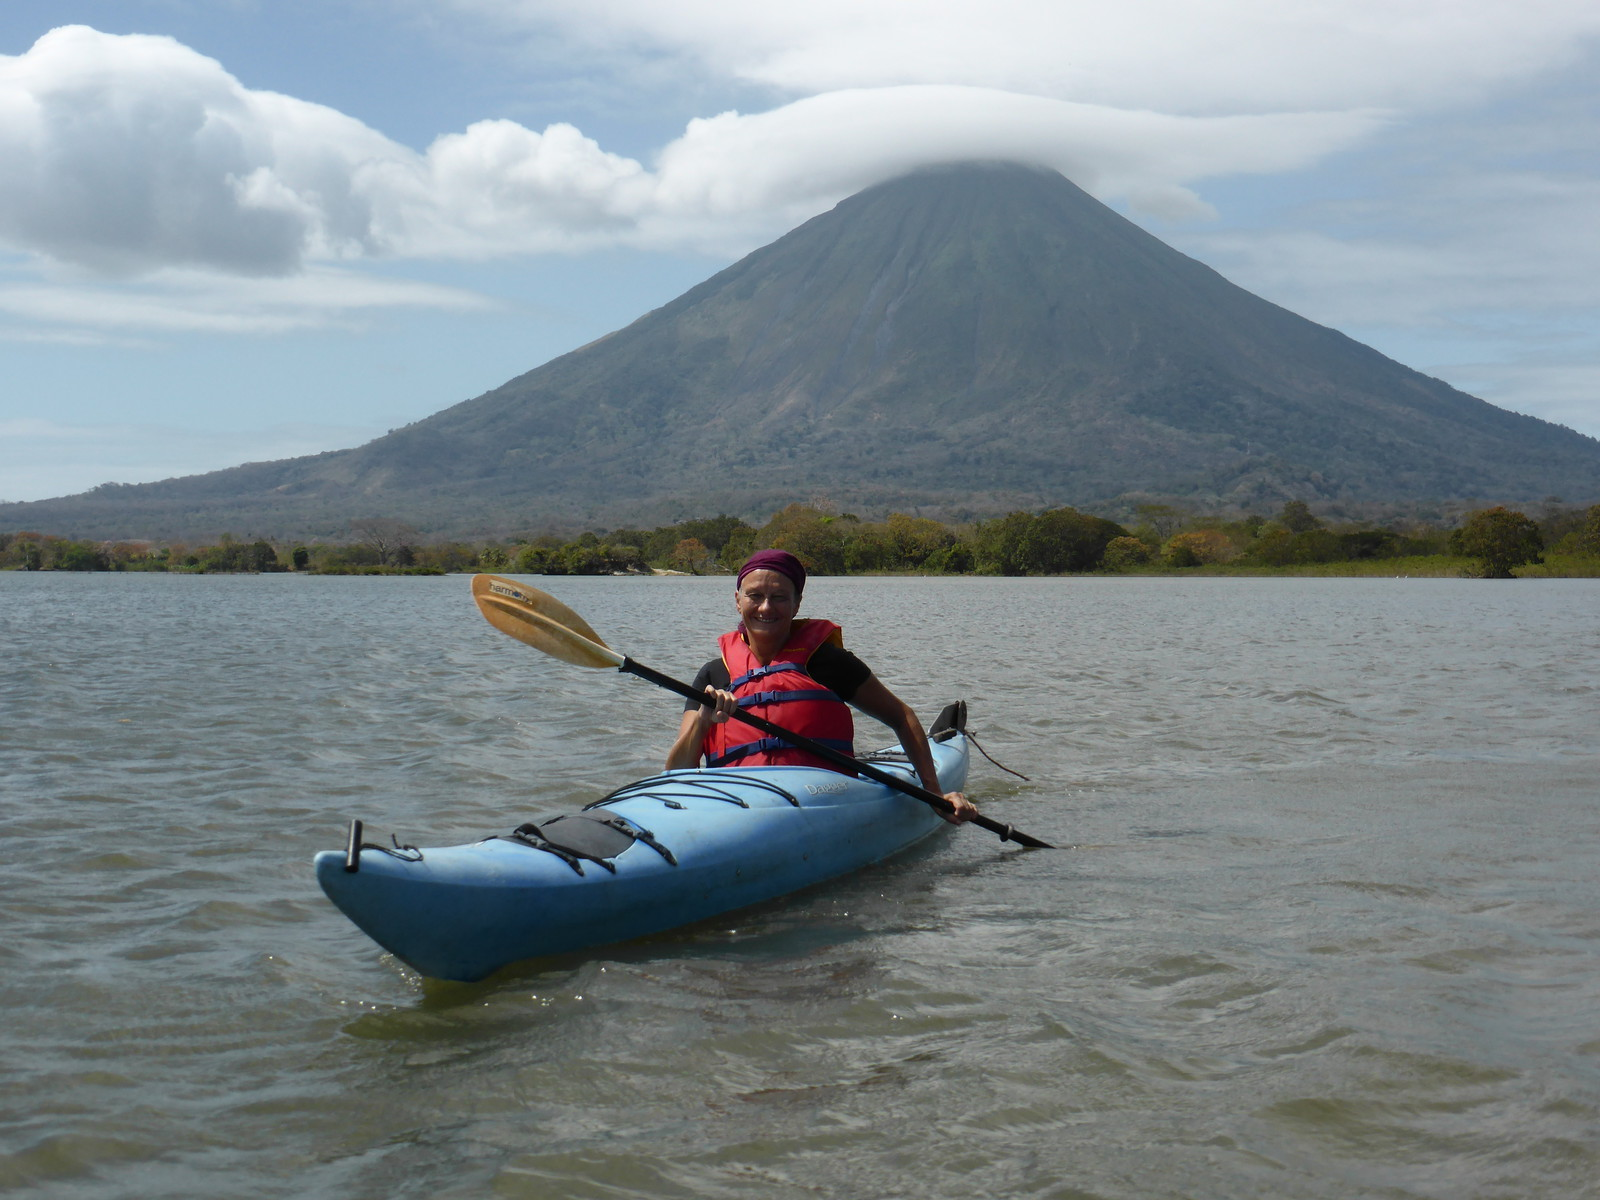 Peta kayaking off Ometepe with Volcán Concepción in the background